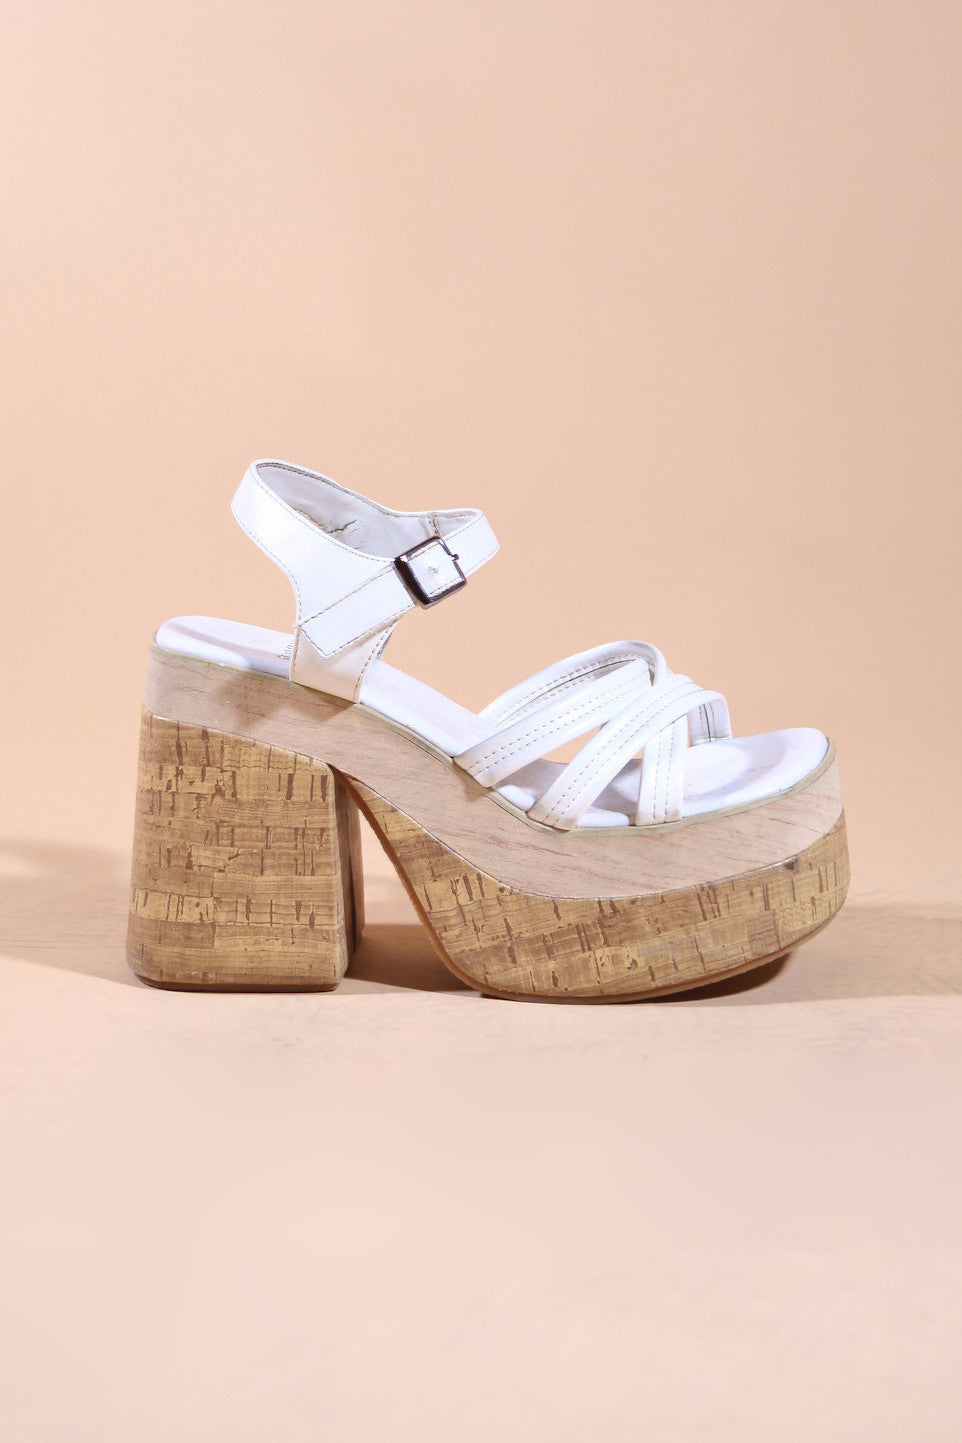 Vintage Shifting Sands Platform Sandals